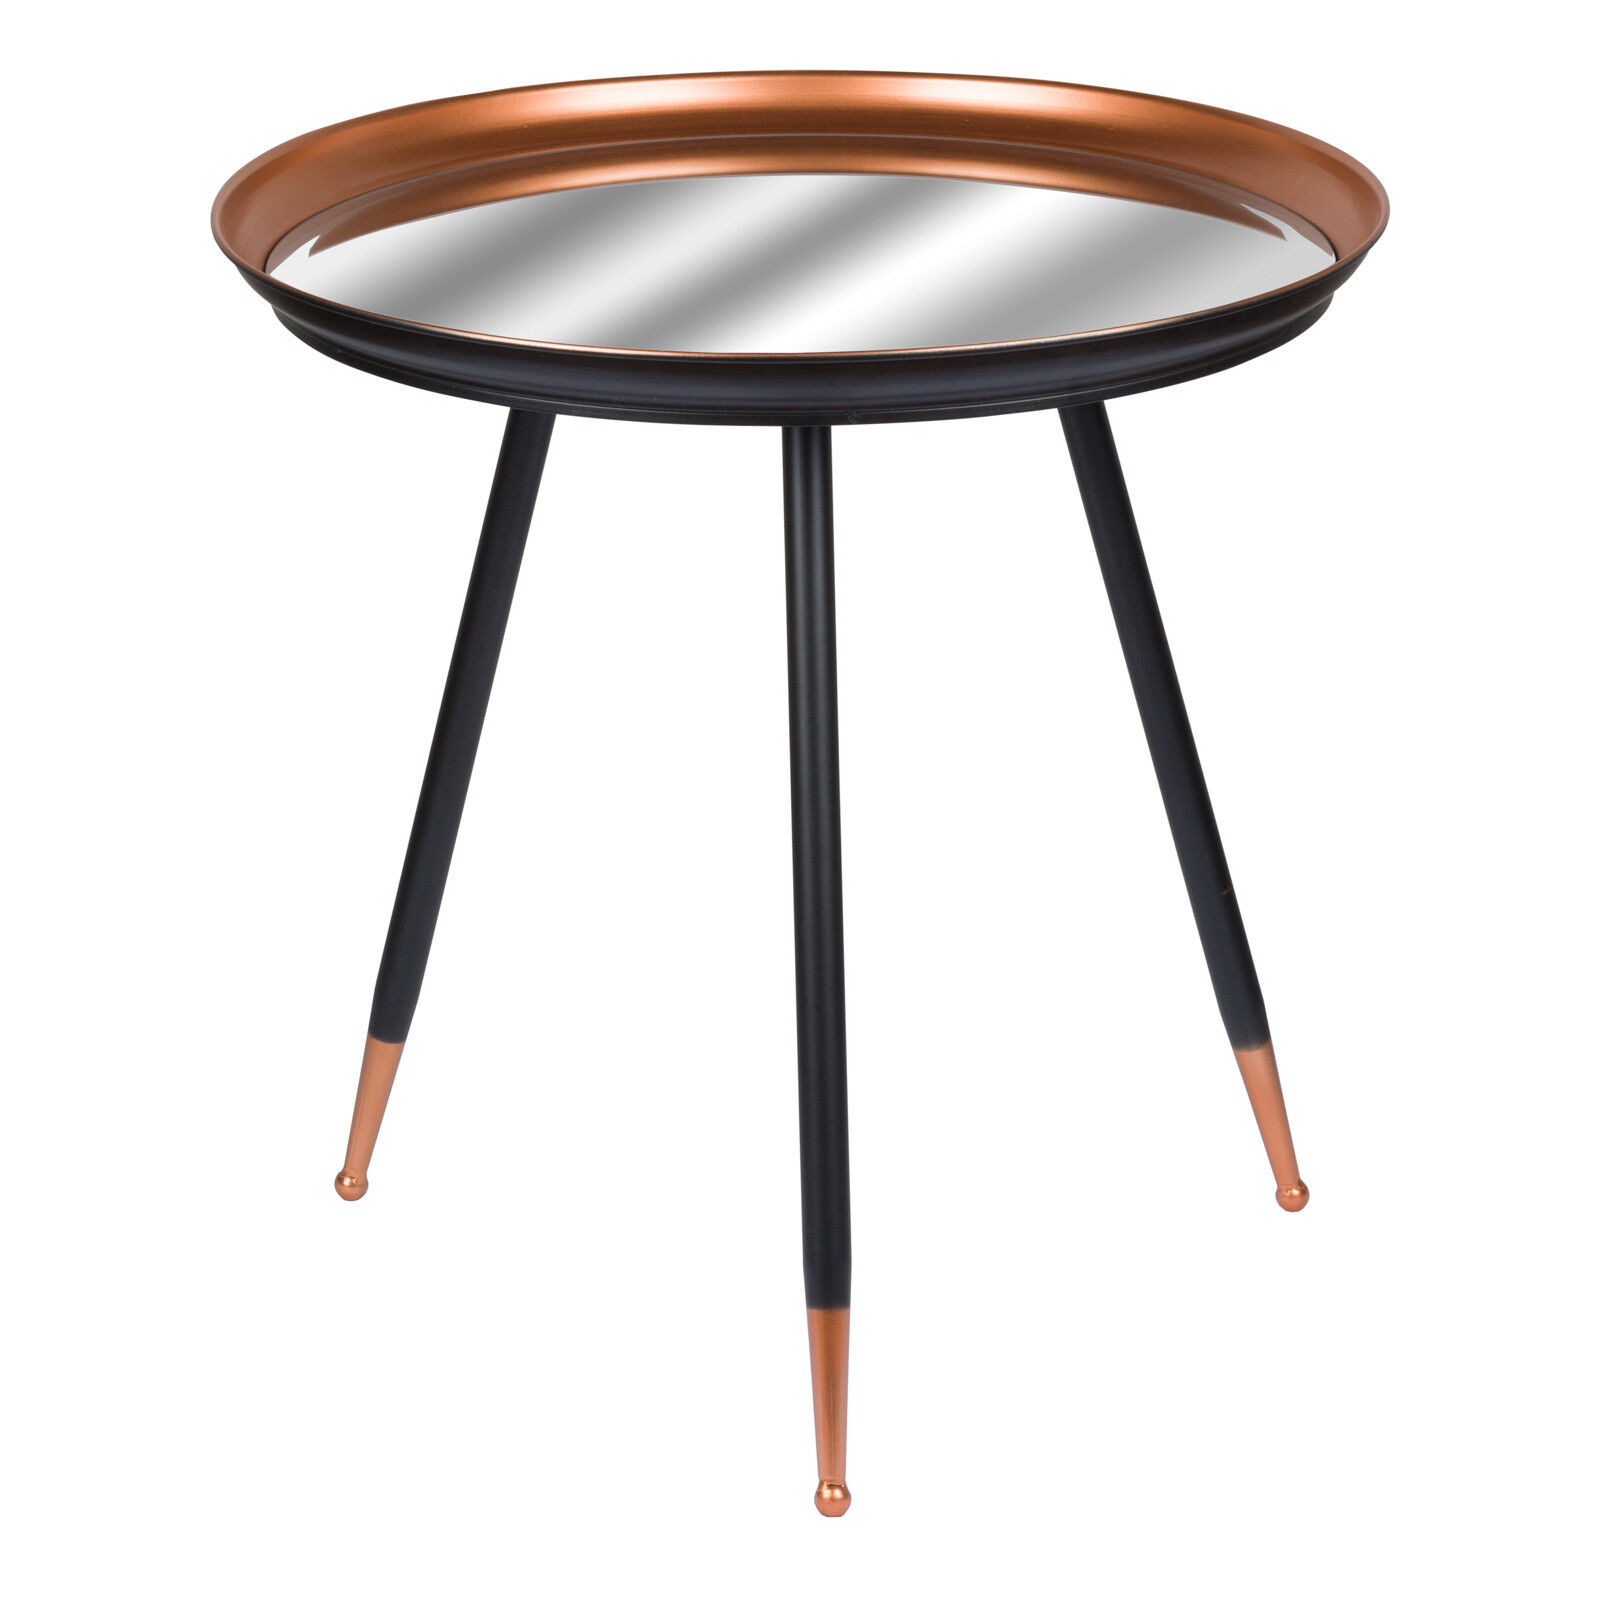 CONTEMPORARY COPPER & BLACK SIDE END LAMP COFFEE TABLE MIRRORED TOP (H18857)